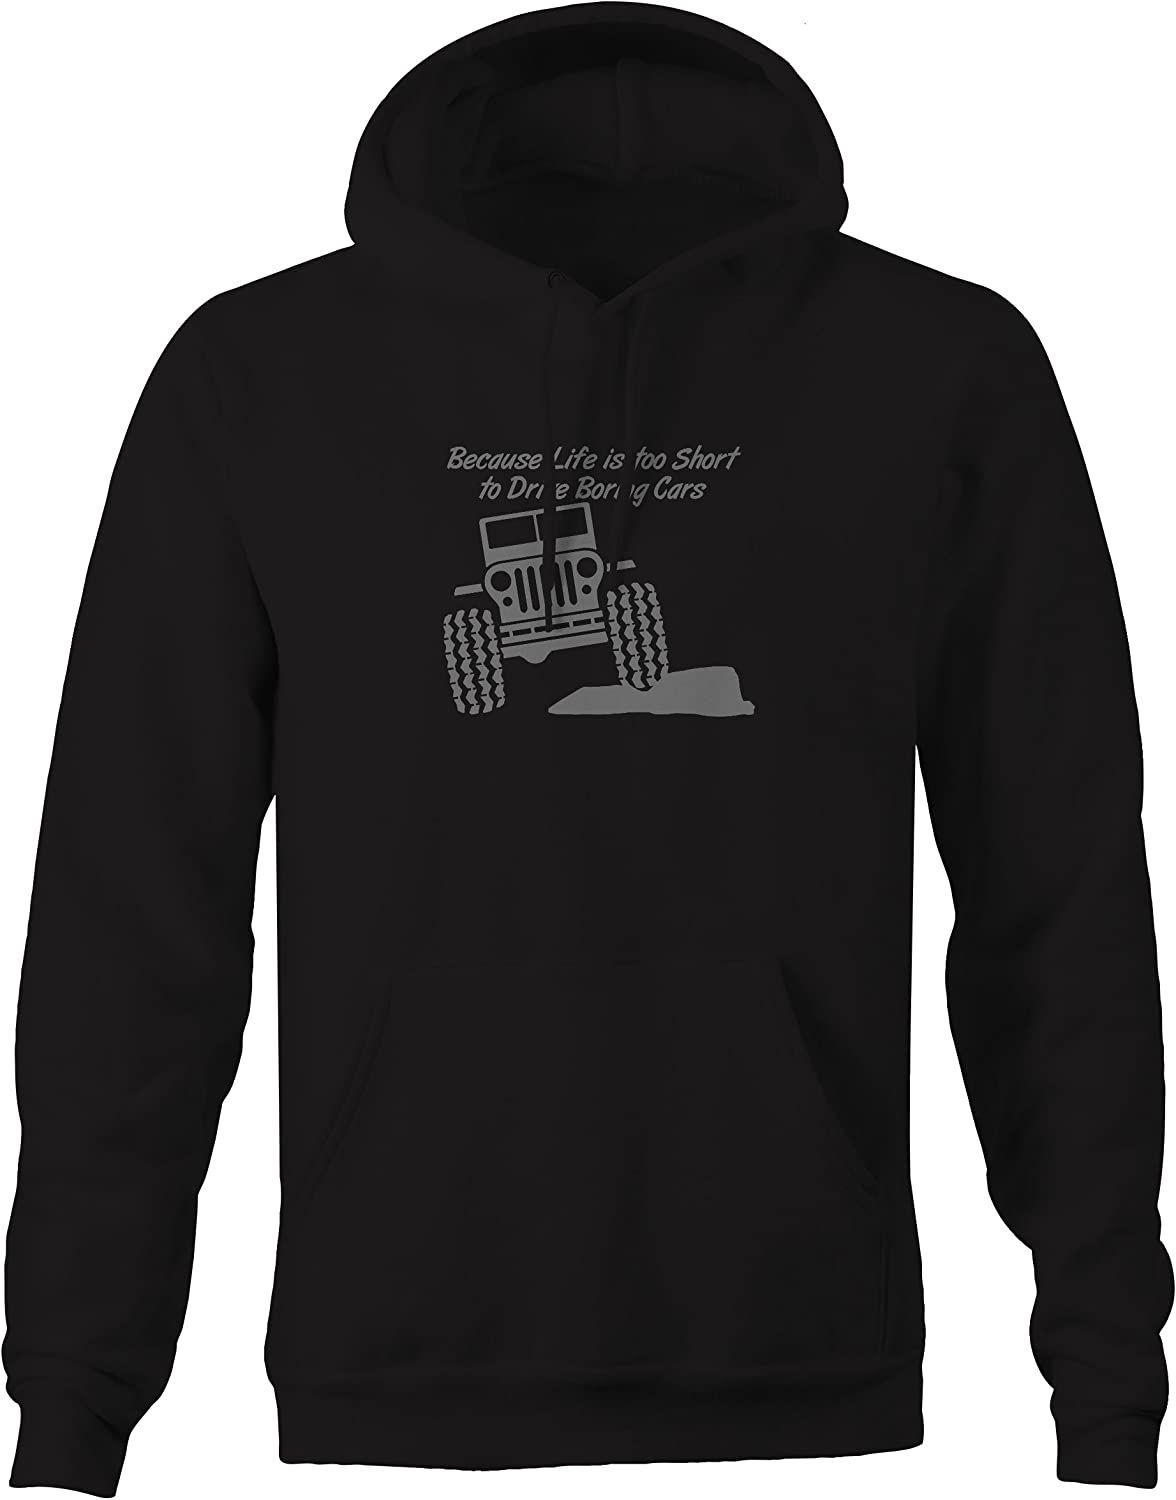 Lifestyle Graphix American 4x4 Life is Too it to Drive Boring Cars Rock Climbing Sweatshirt